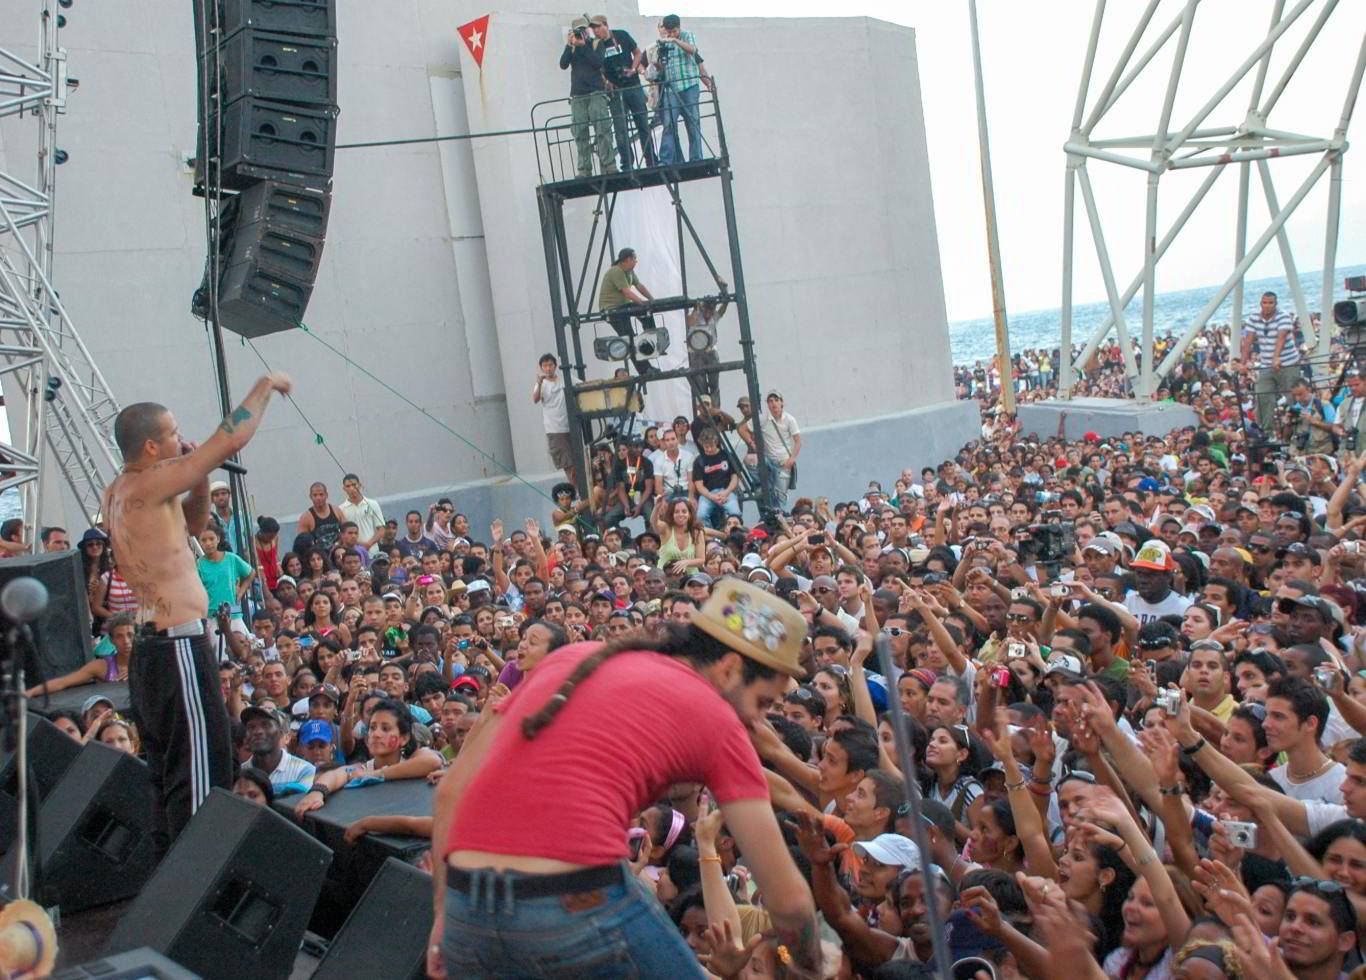 Concert of Calle 13 in the José Martí Anti-Imperialist Tribune, on March 23, 2010. Photo: Kaloian.